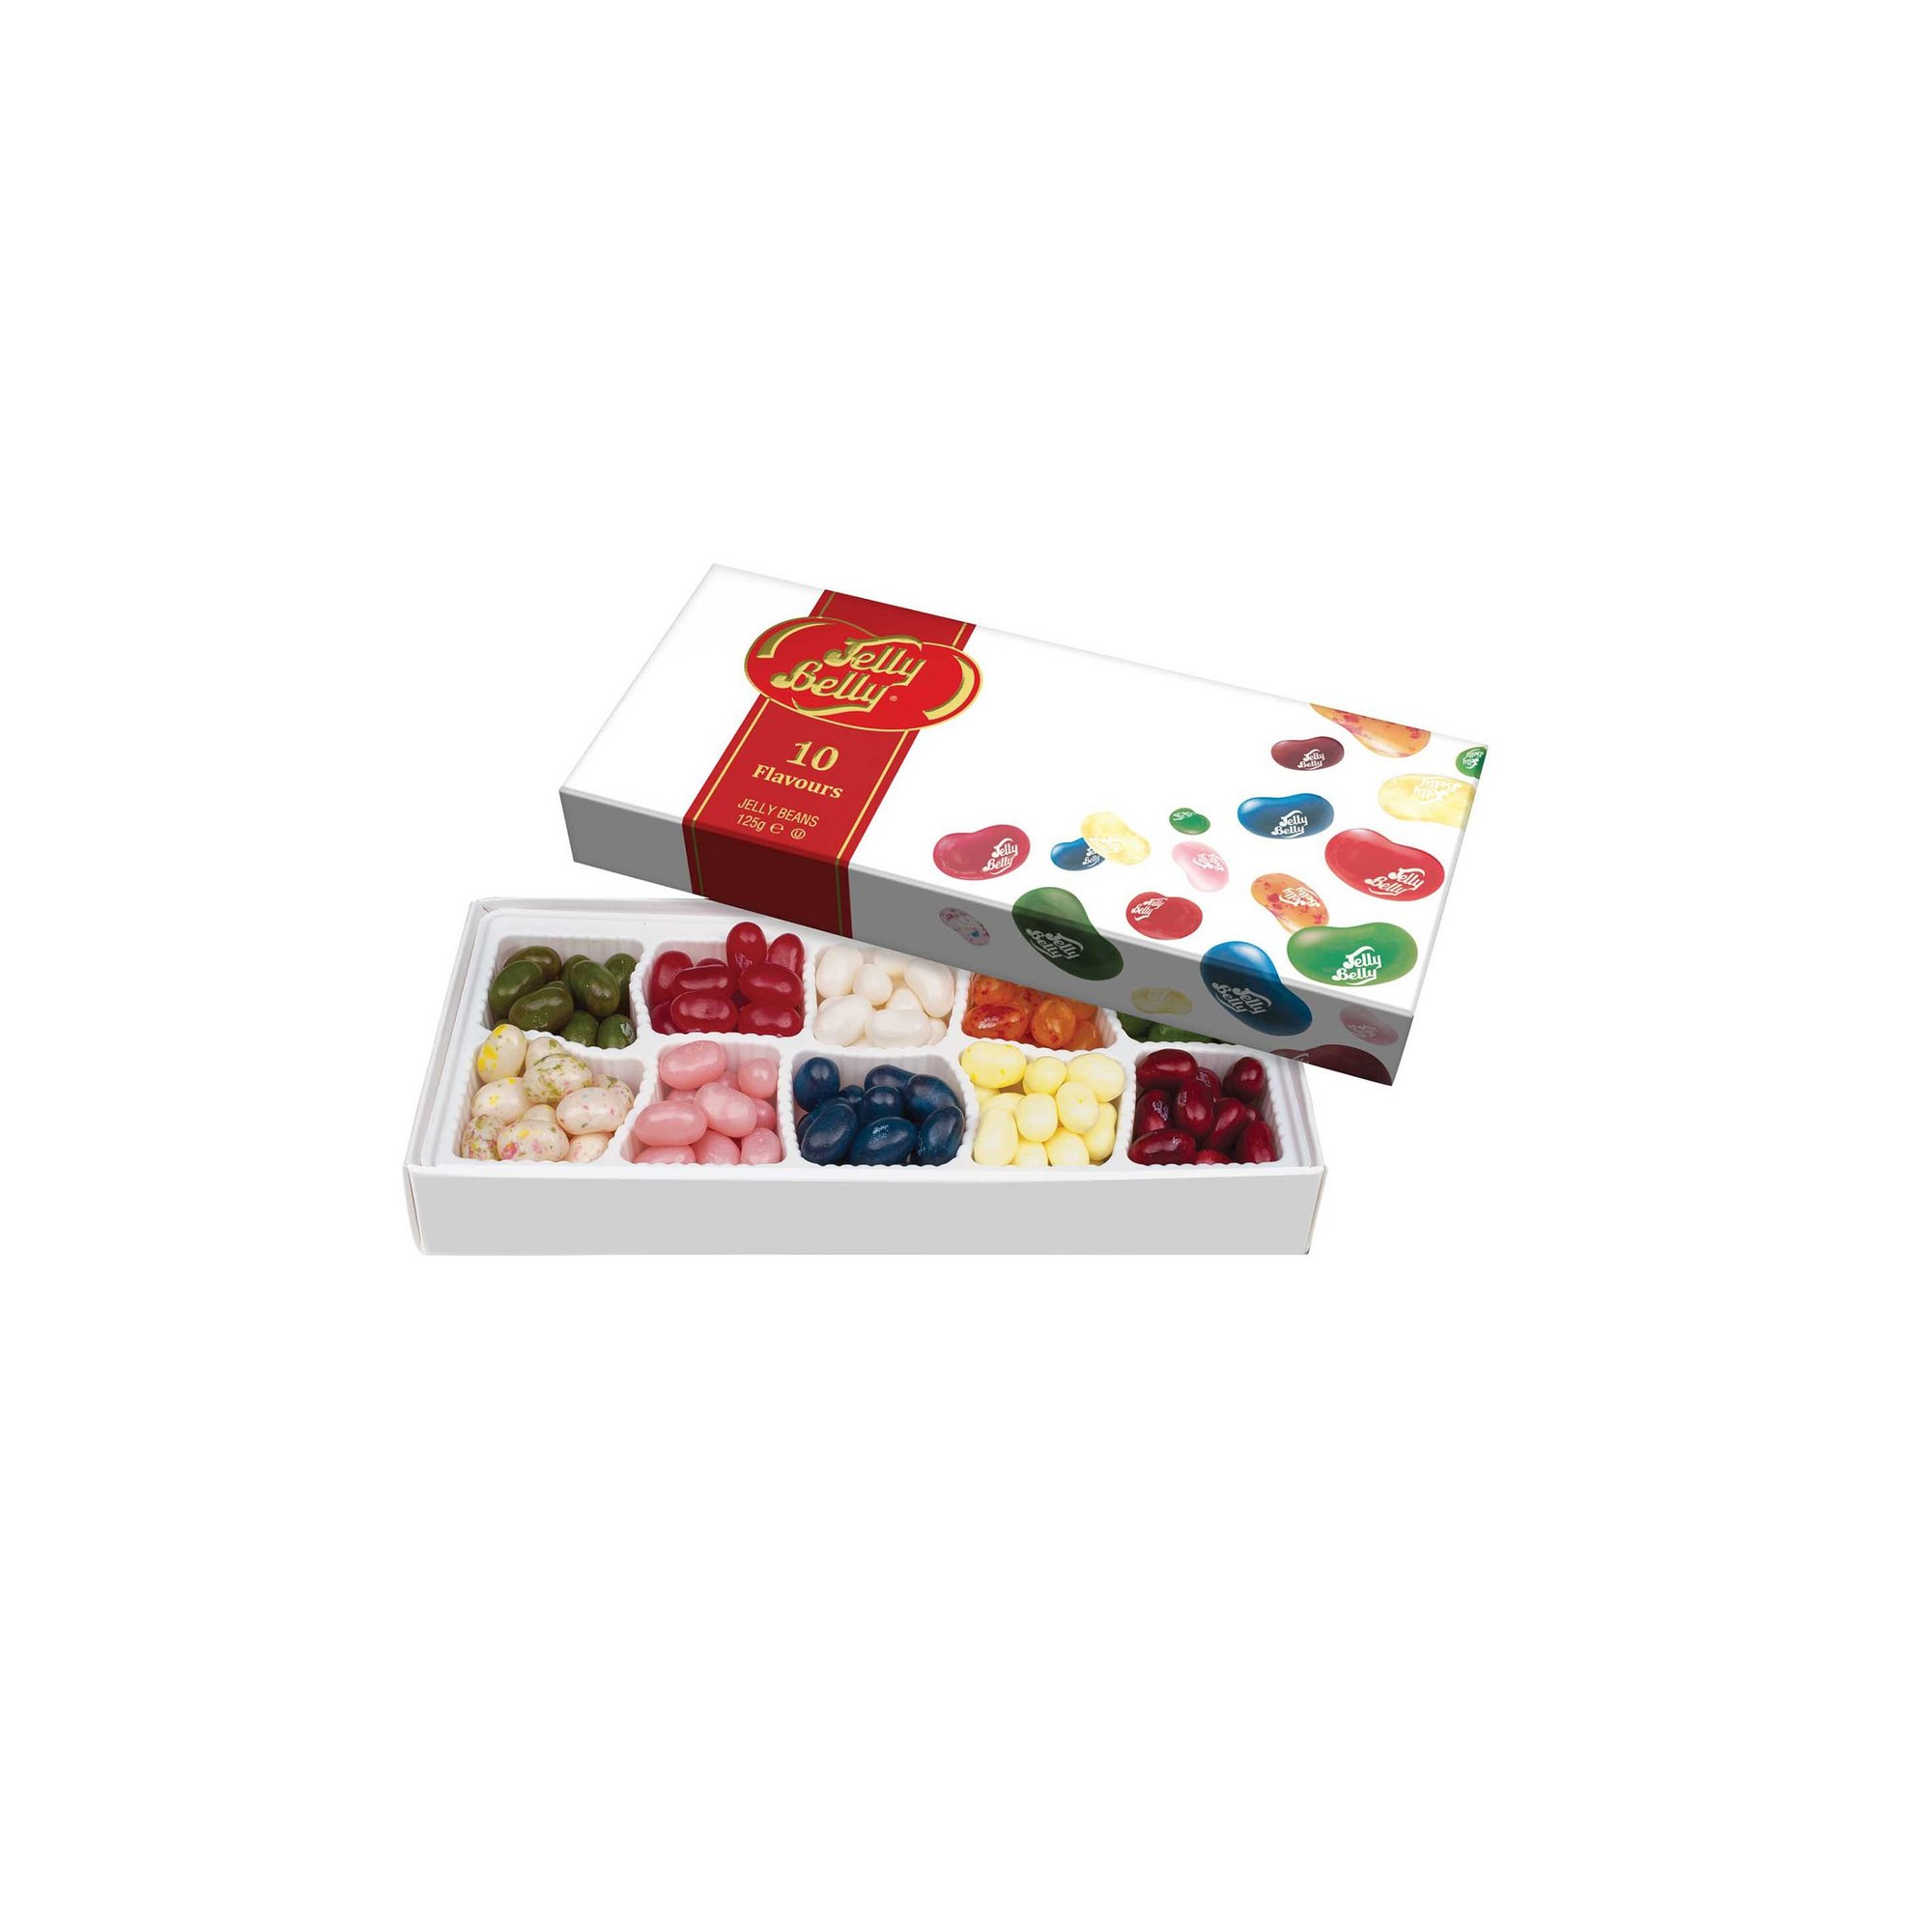 Image of Jelly Belly Gift Box